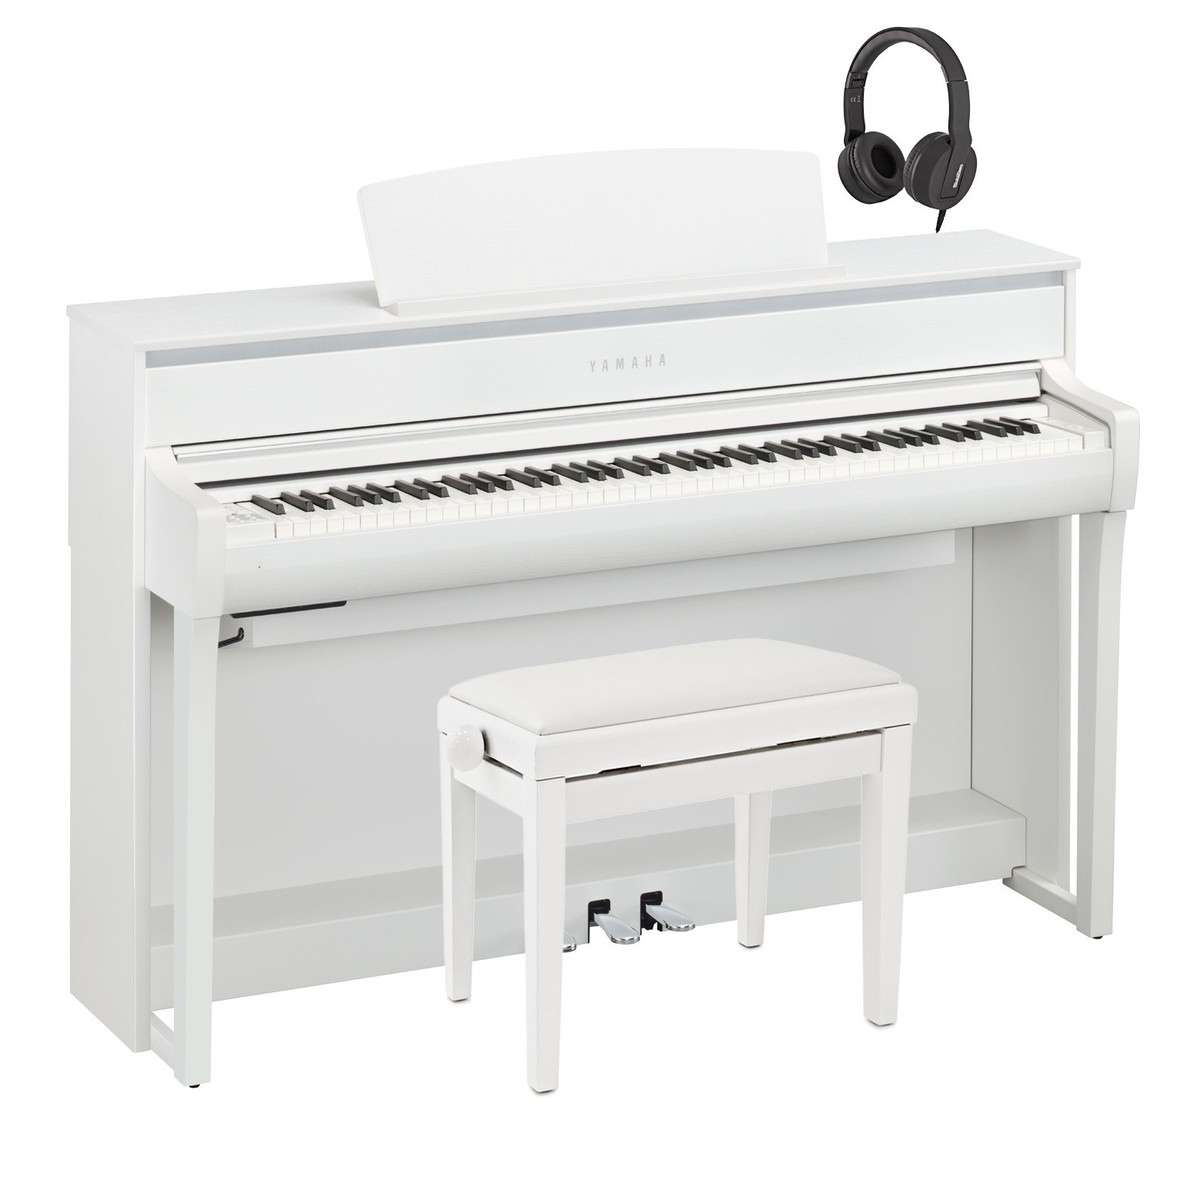 yamaha clp 675 digital piano package white at gear4music. Black Bedroom Furniture Sets. Home Design Ideas